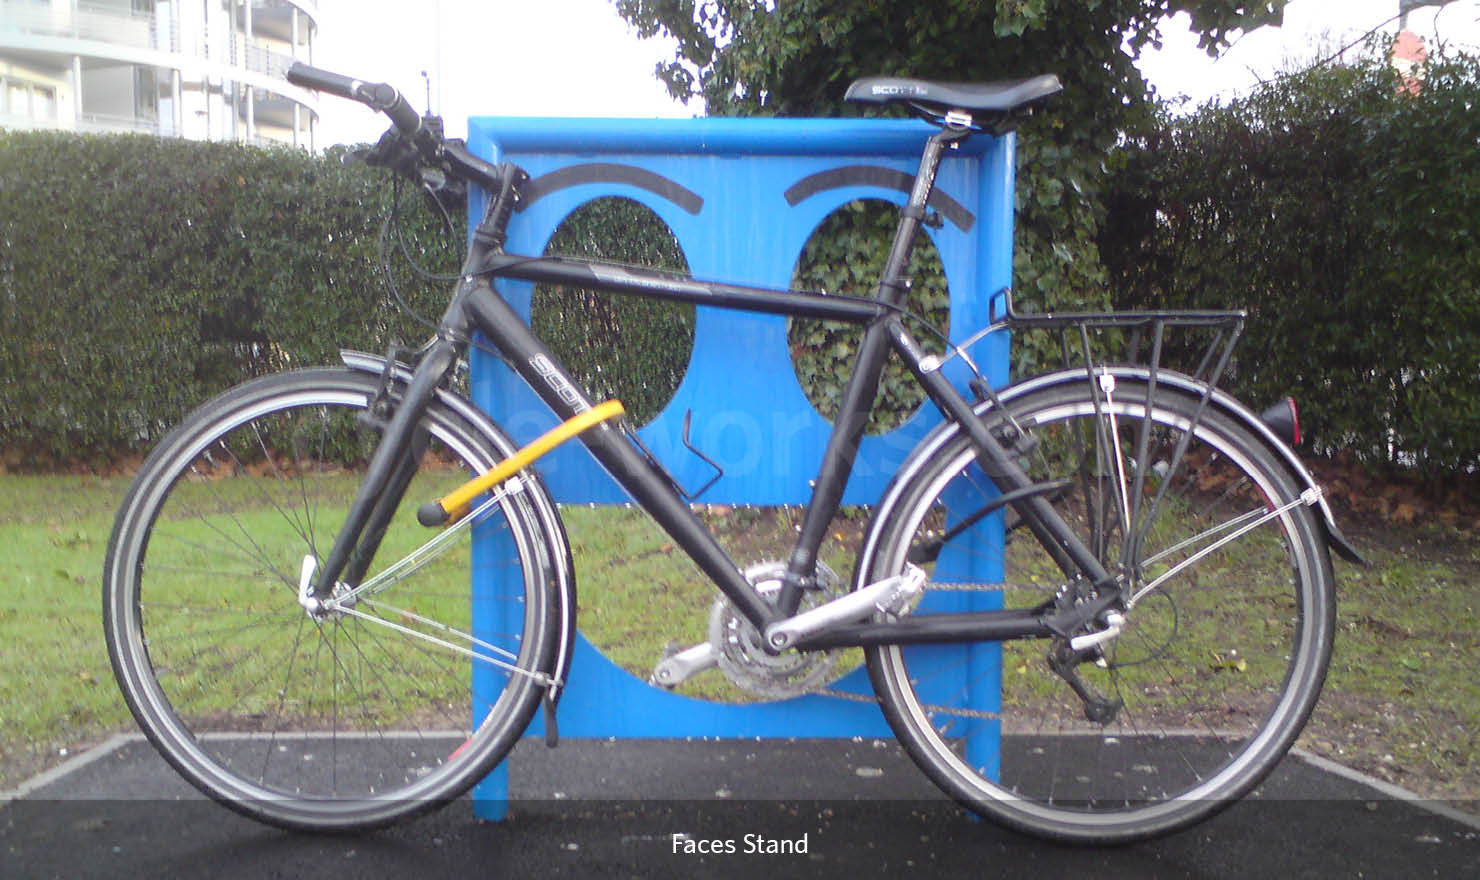 Face Bike Stand